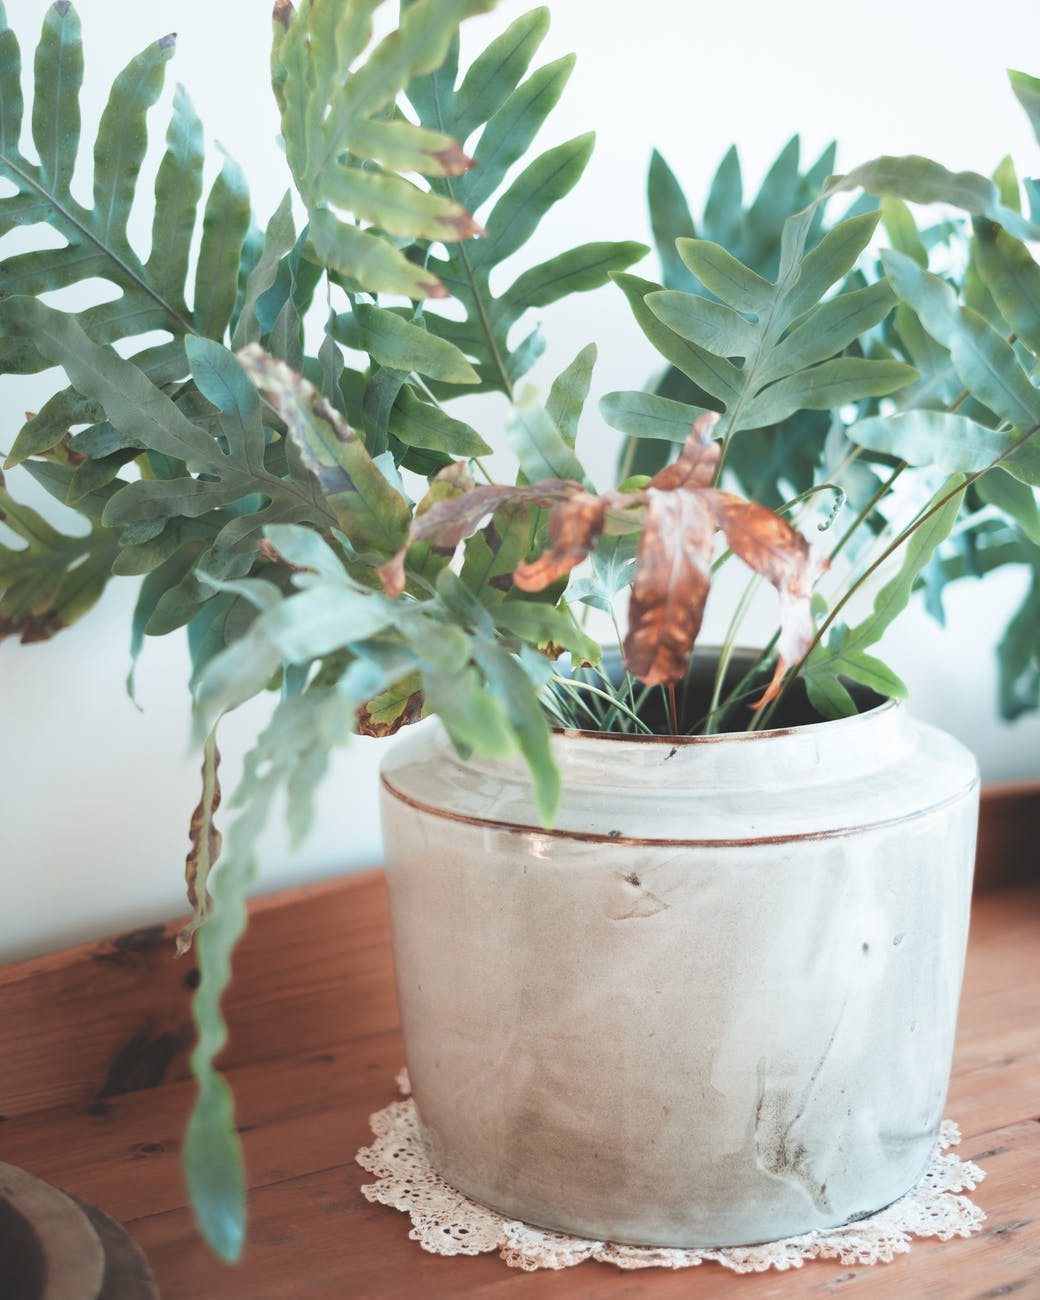 green plant with fresh leaves in ceramic pot